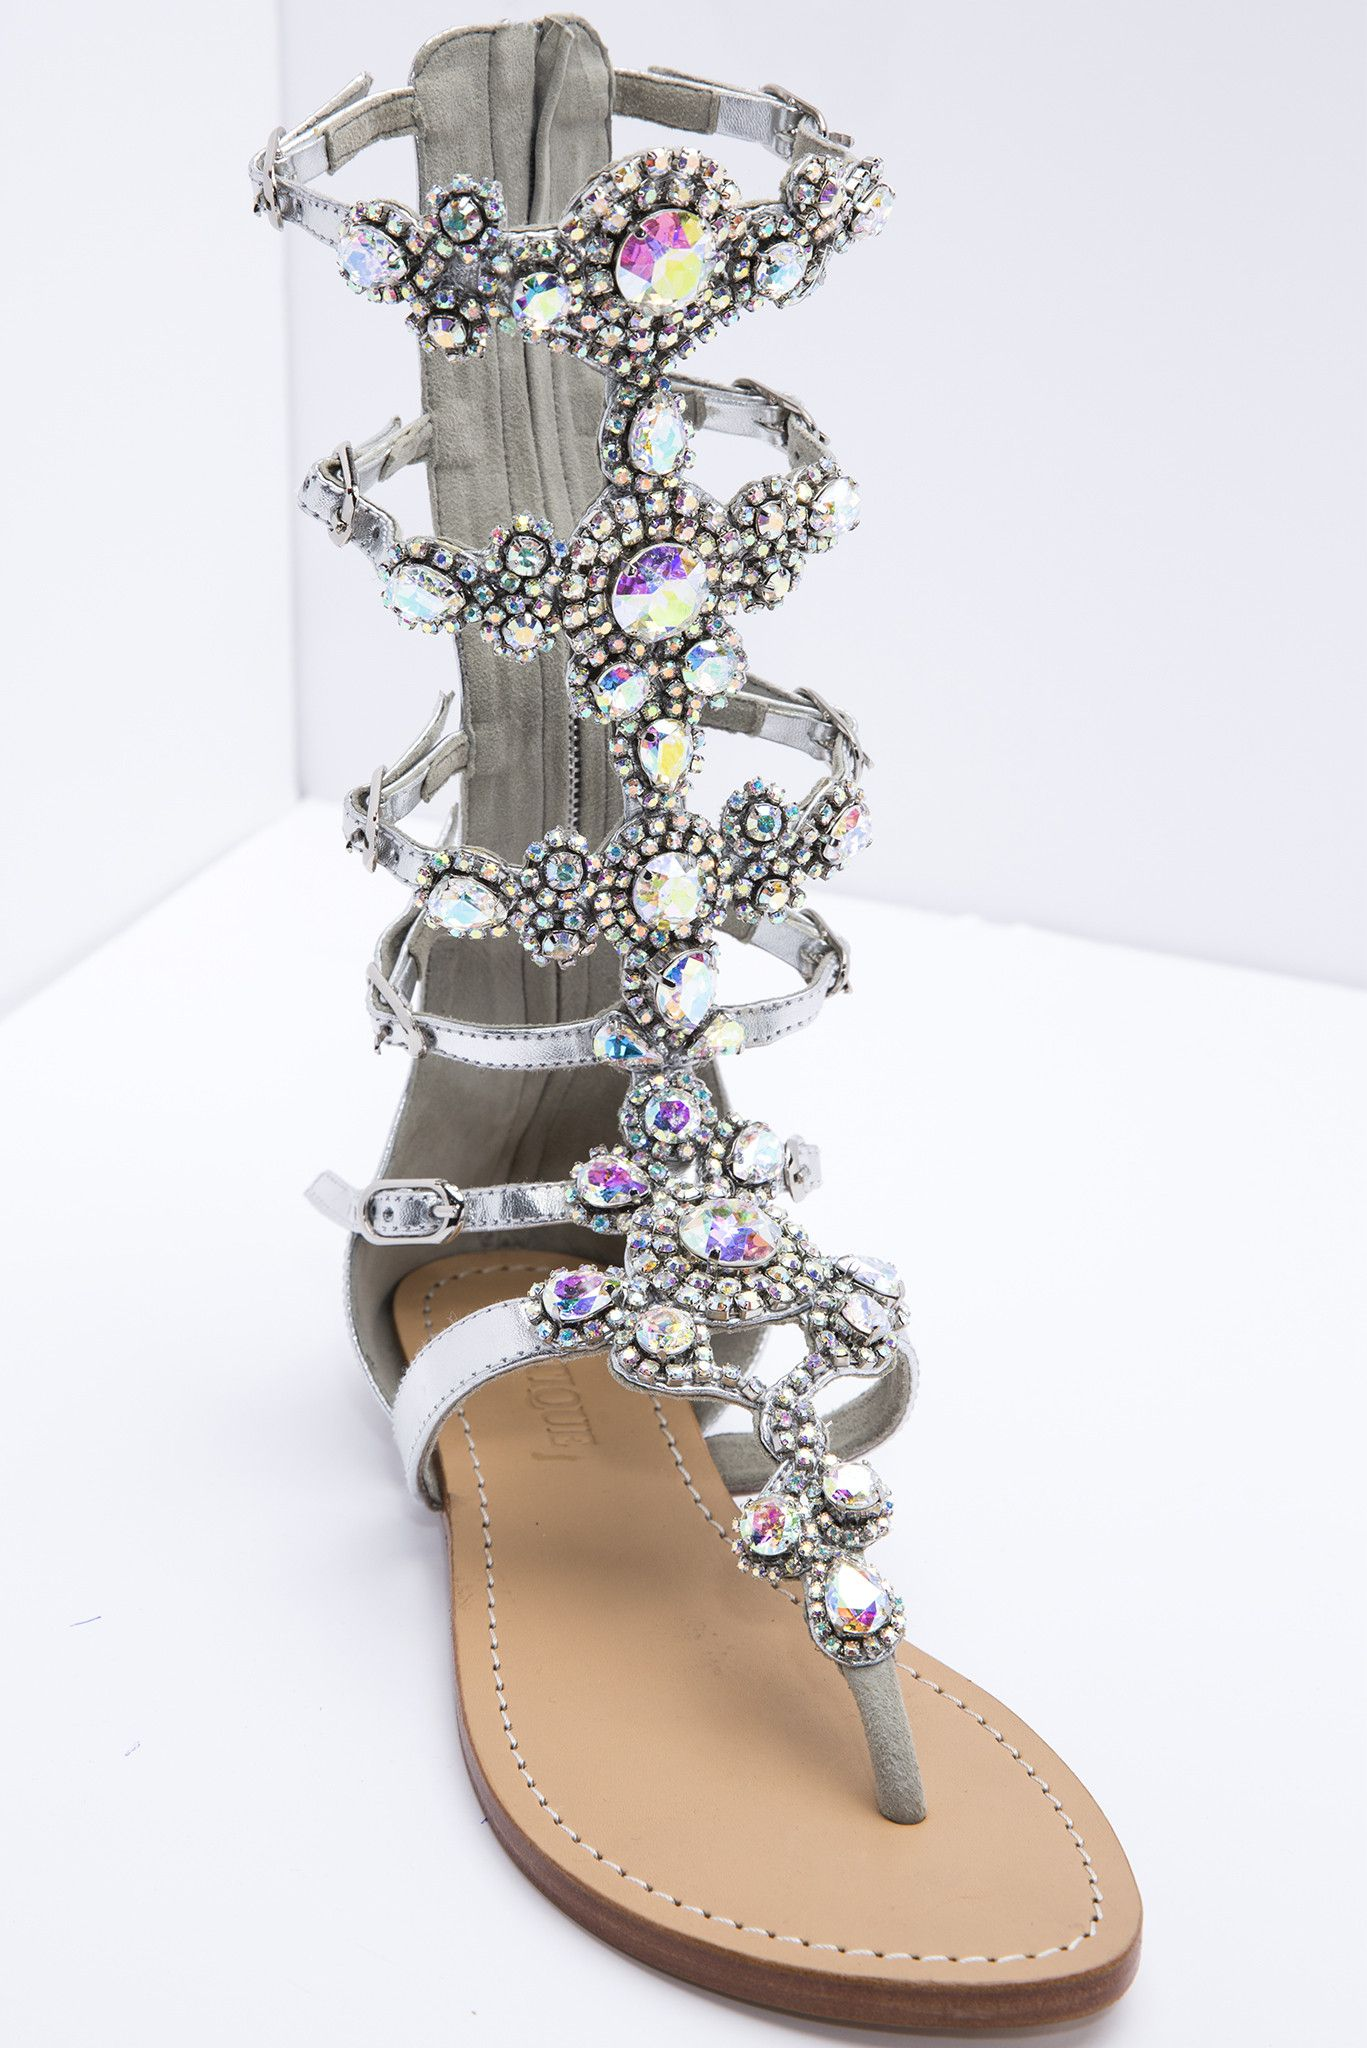 8b9b4343c3c385 Glisten Up Their Day Gladiator Sandals By Mystique from Kosmios More